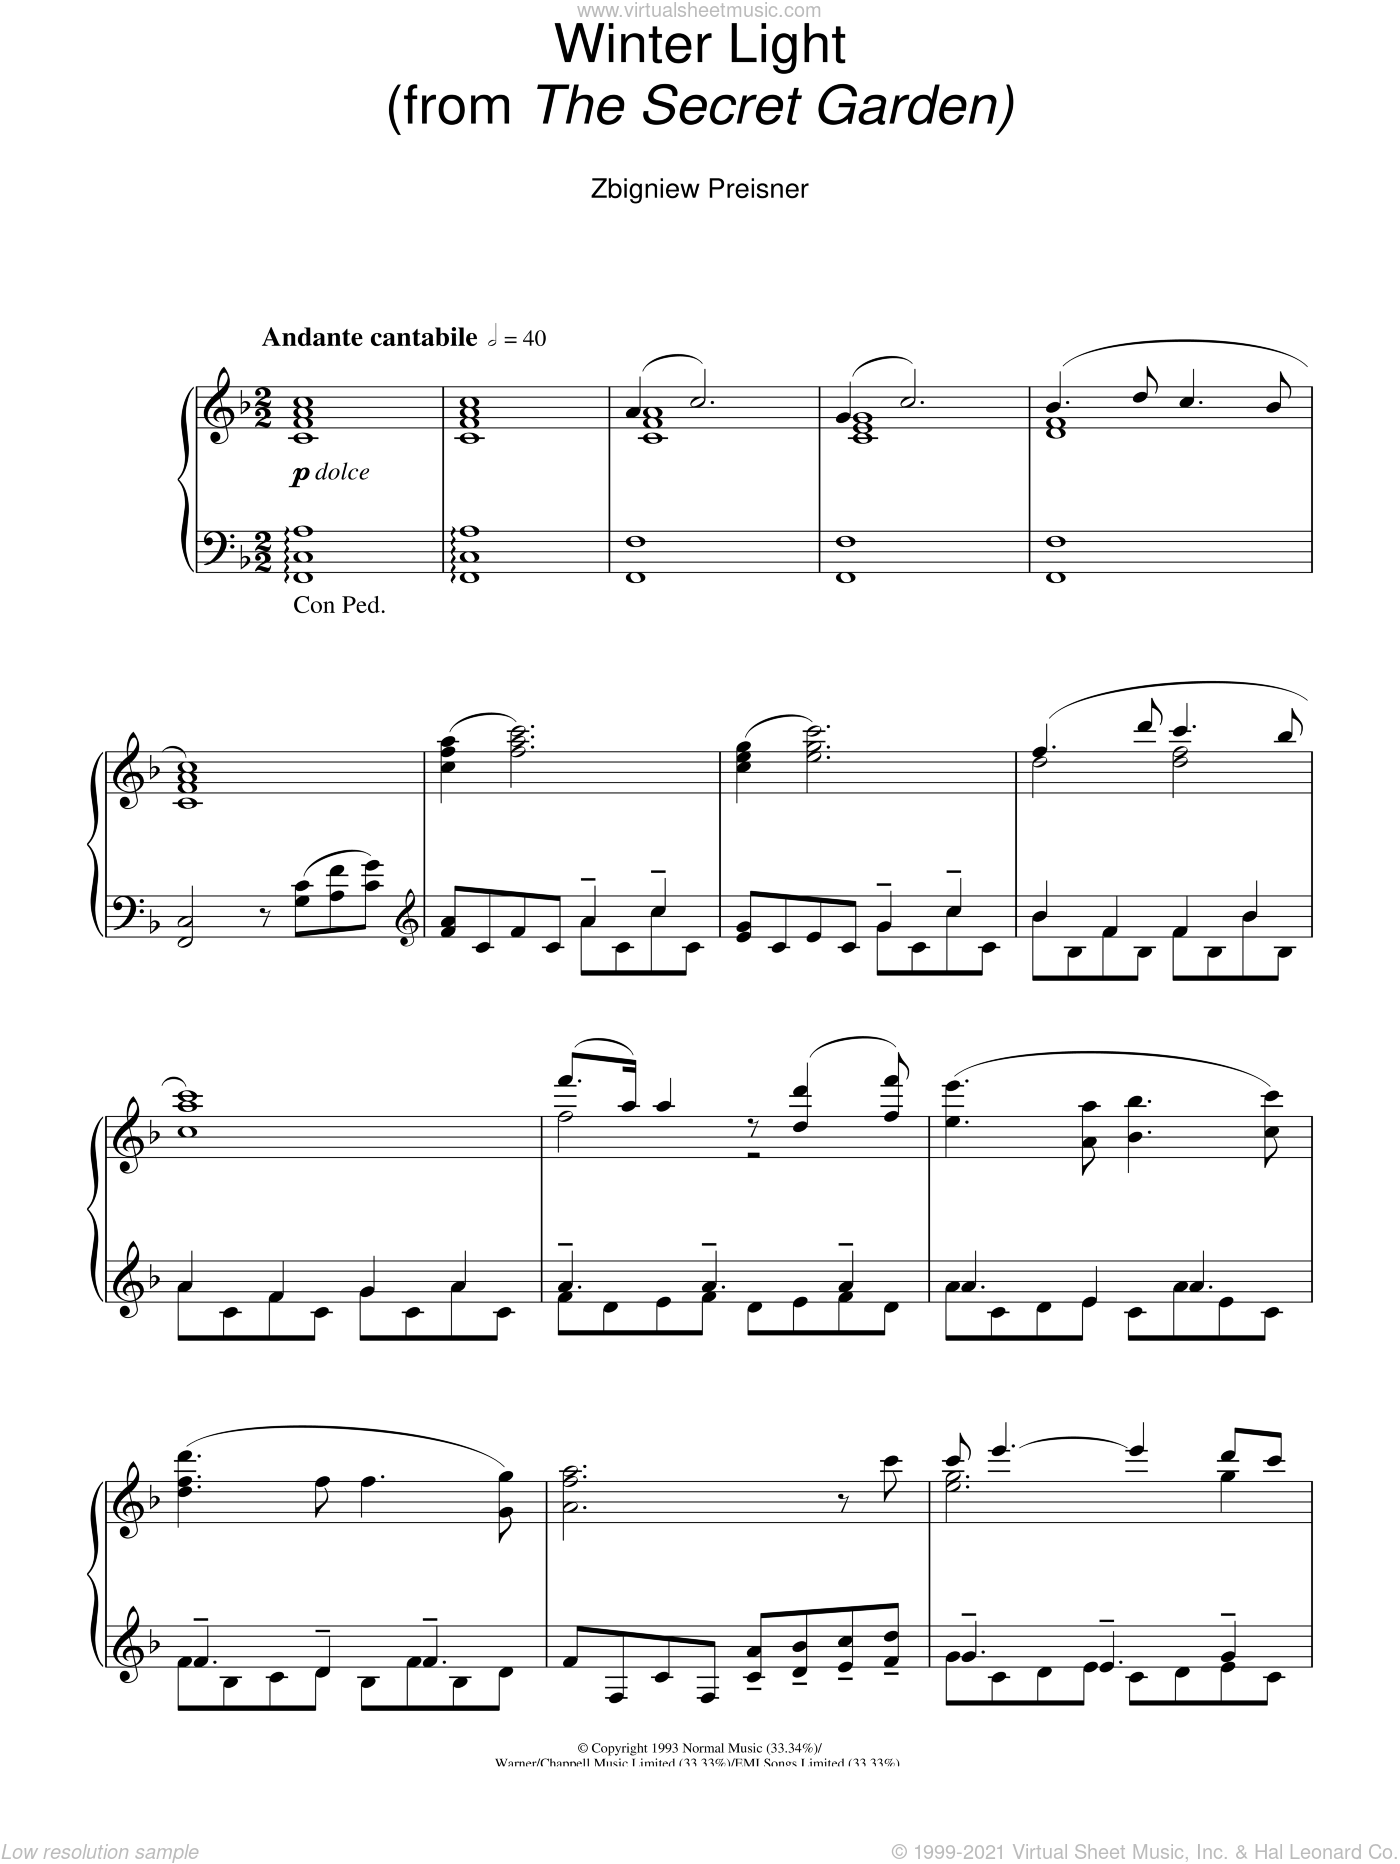 Winter Light (from The Secret Garden) sheet music for piano solo by Zbigniew Preisner, intermediate skill level